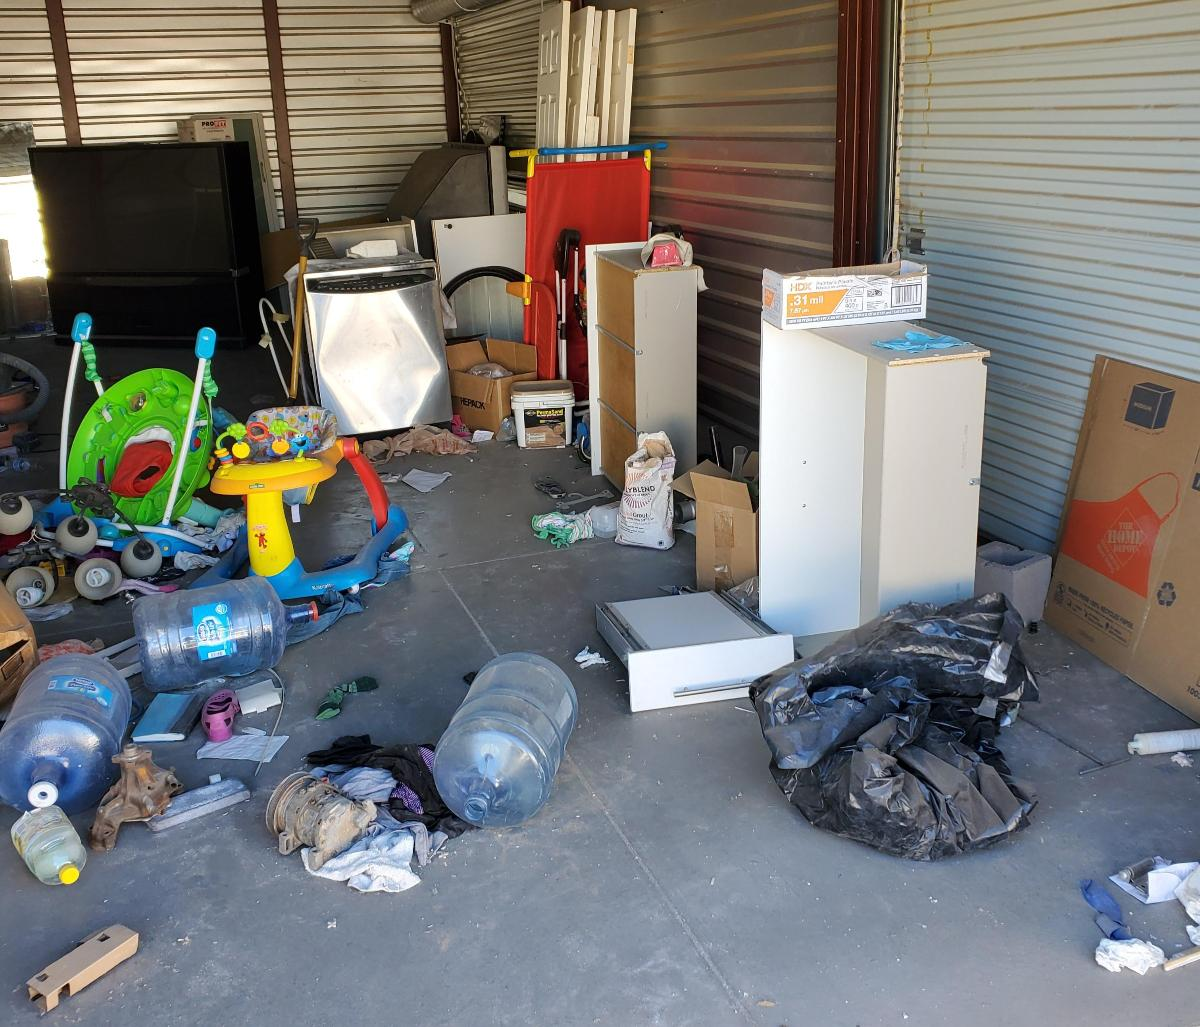 Goodyear  Self Storage Auction #158855 - Image appliances,boxes / totes,electronics,furniture,tools,wall art